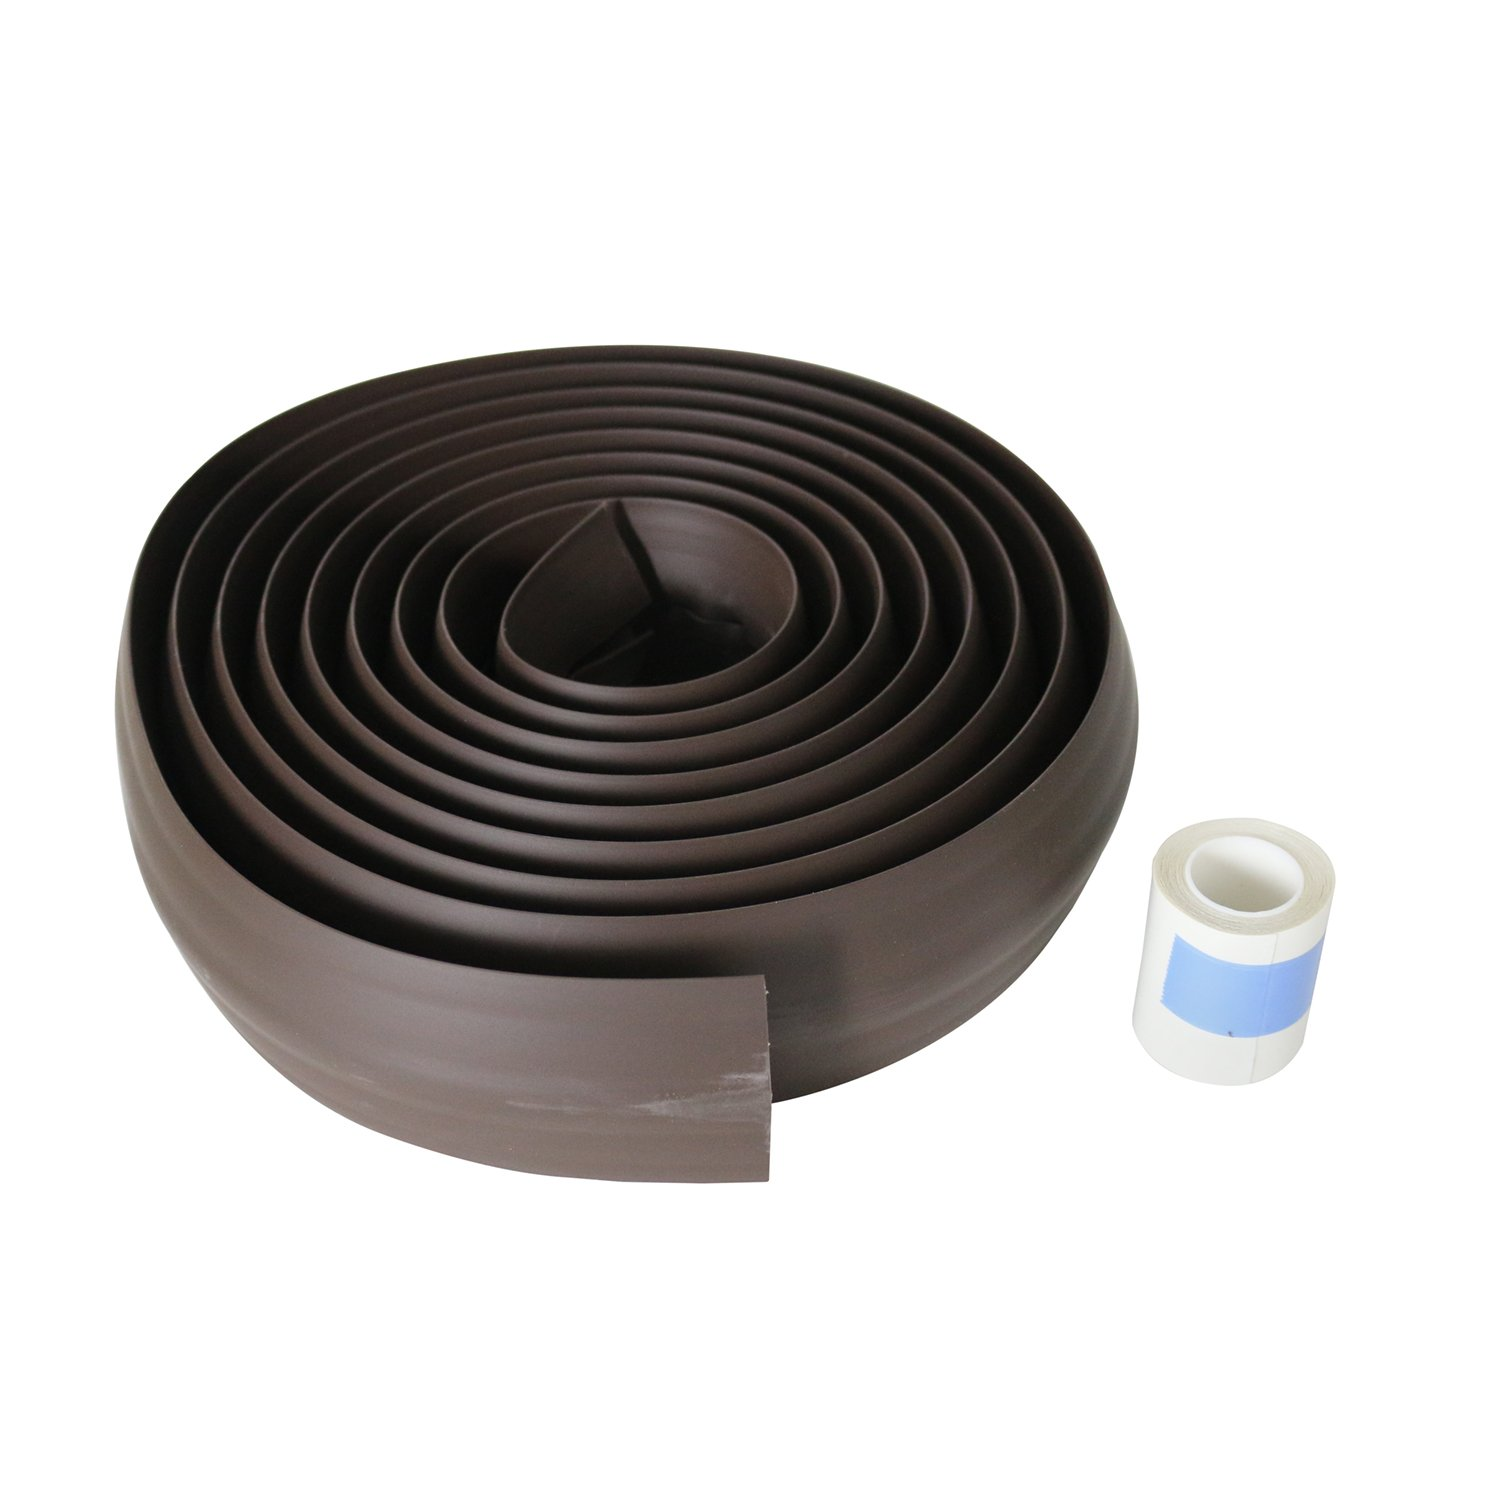 Legrand - Wiremold CDB-15 Corduct Overfloor Cord Protector-  Rubber Duct Floor Cord Cover, Brown, 15 Feet (180 Inches)